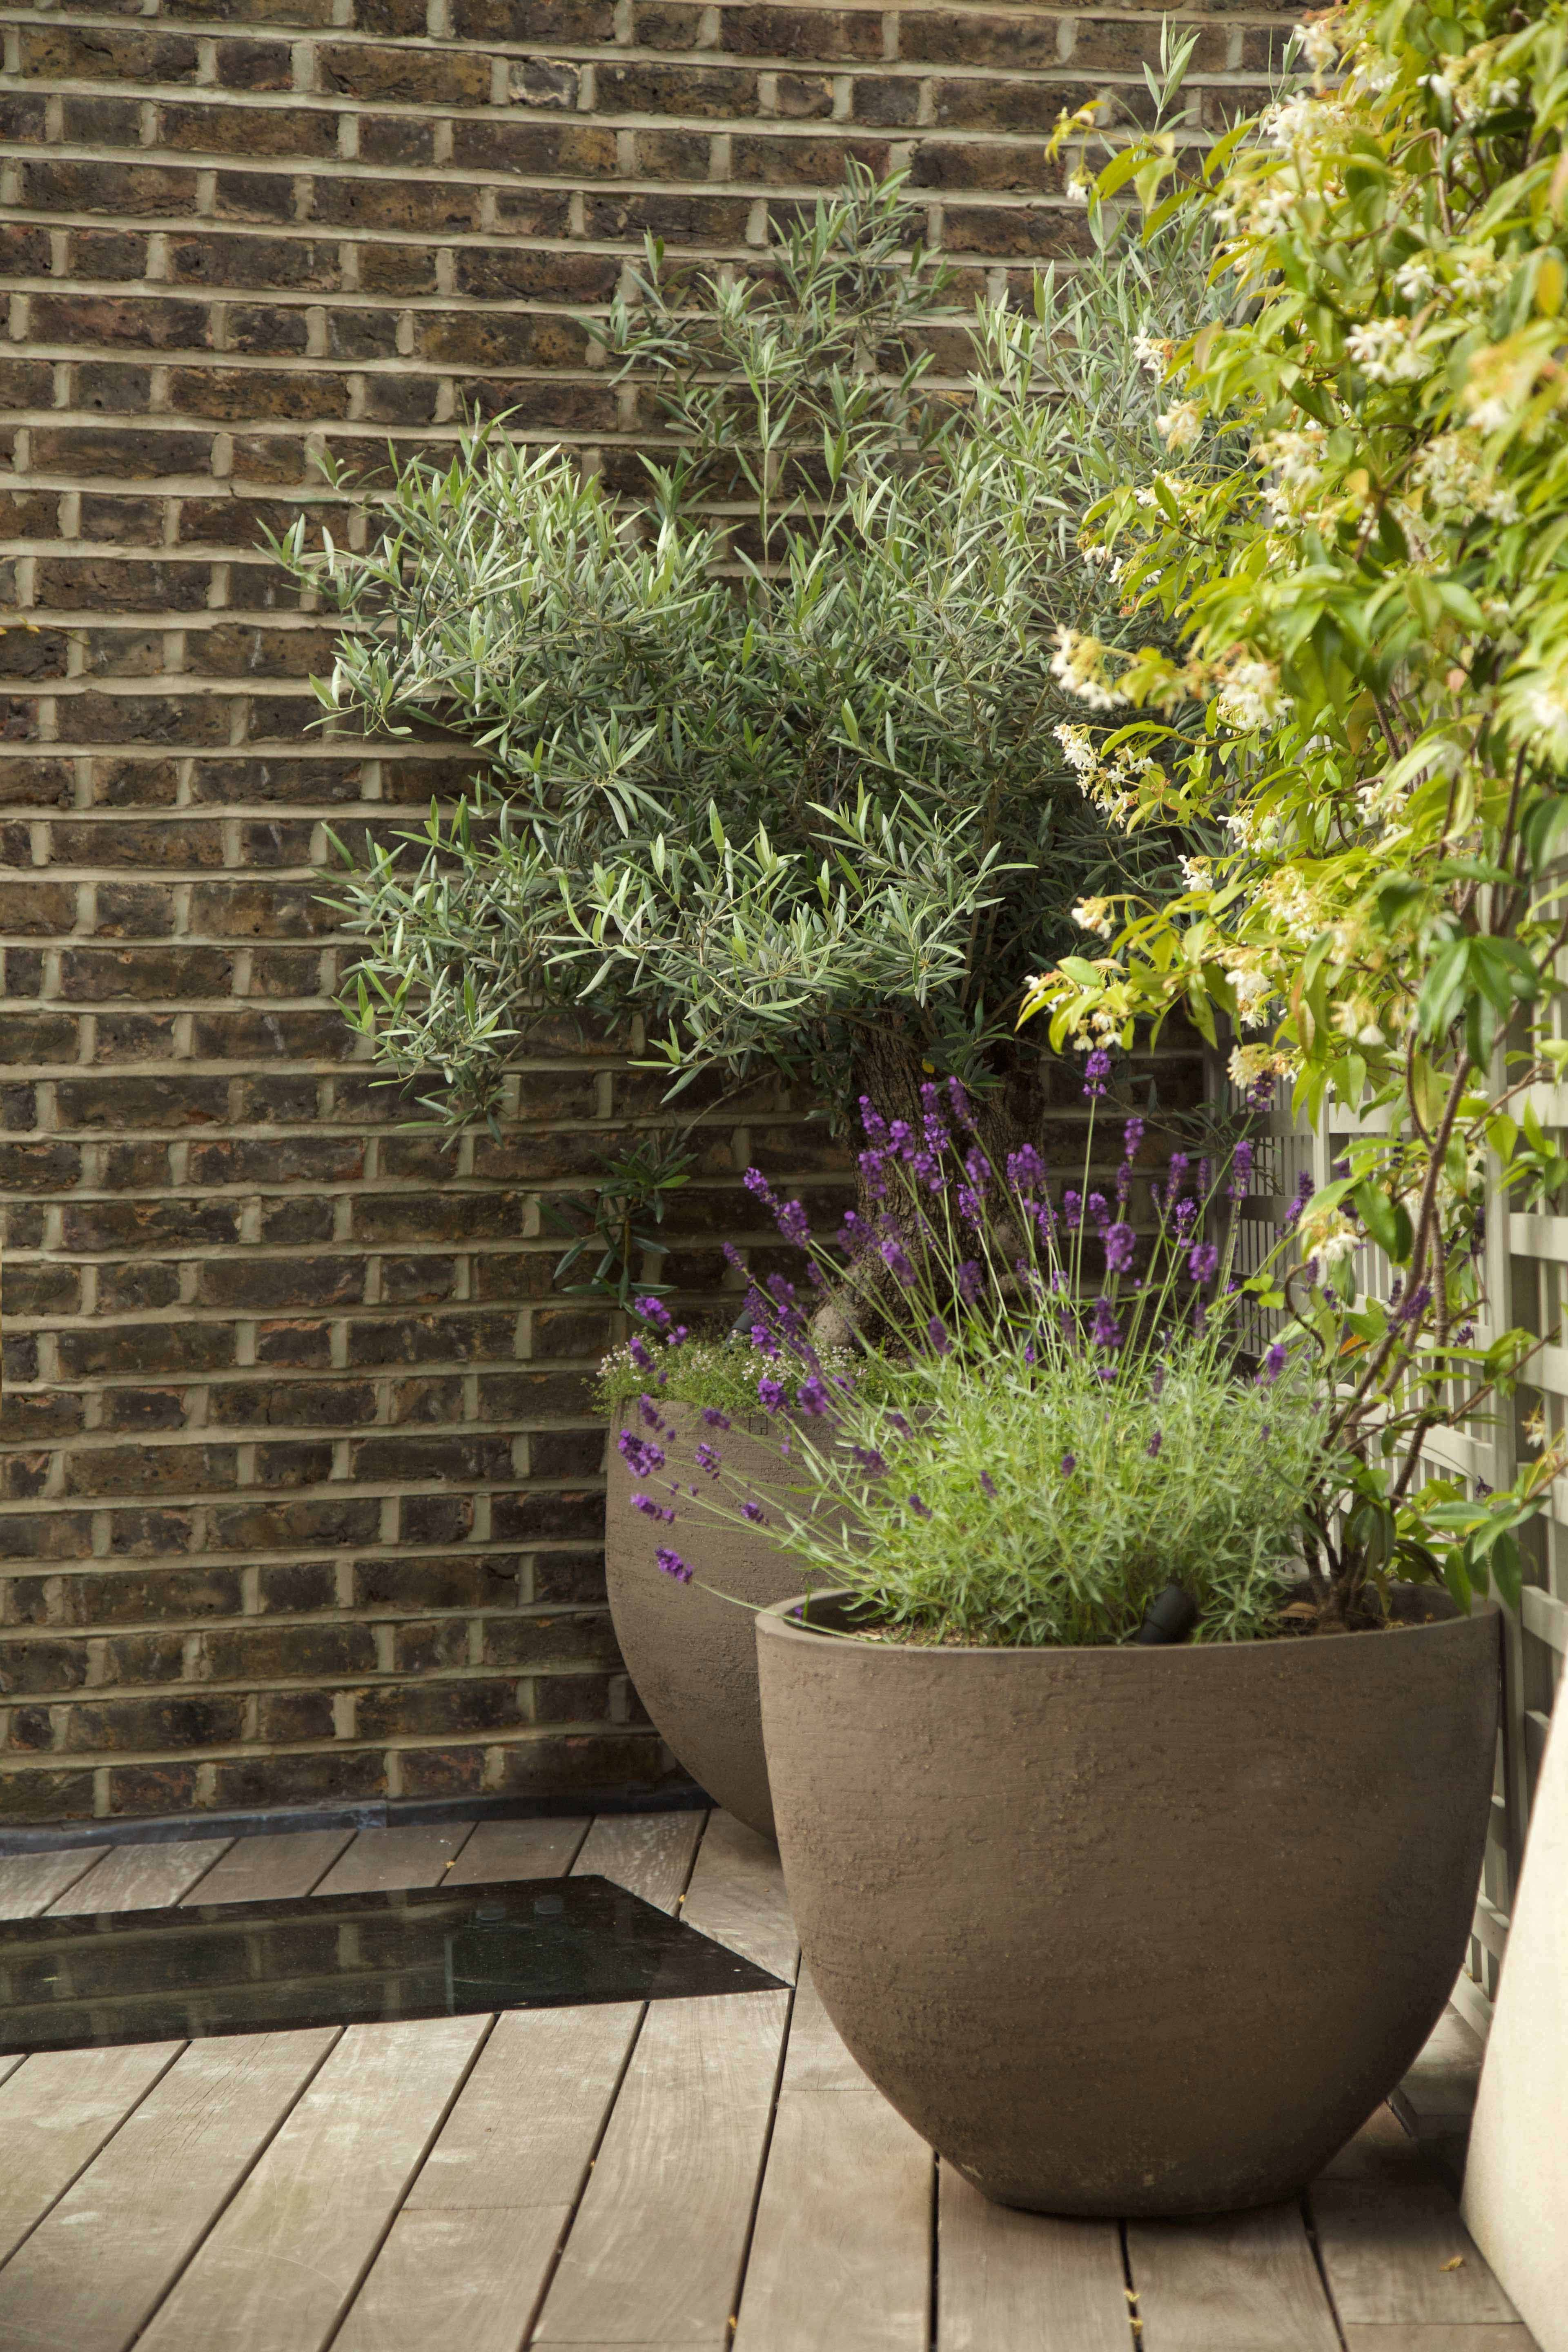 Olive Tree Underplanted With Creeeping Thyme Lavender And Jasmine Climbers In Atelier Vierkant Pots Potted Trees Garden Design Planter Design